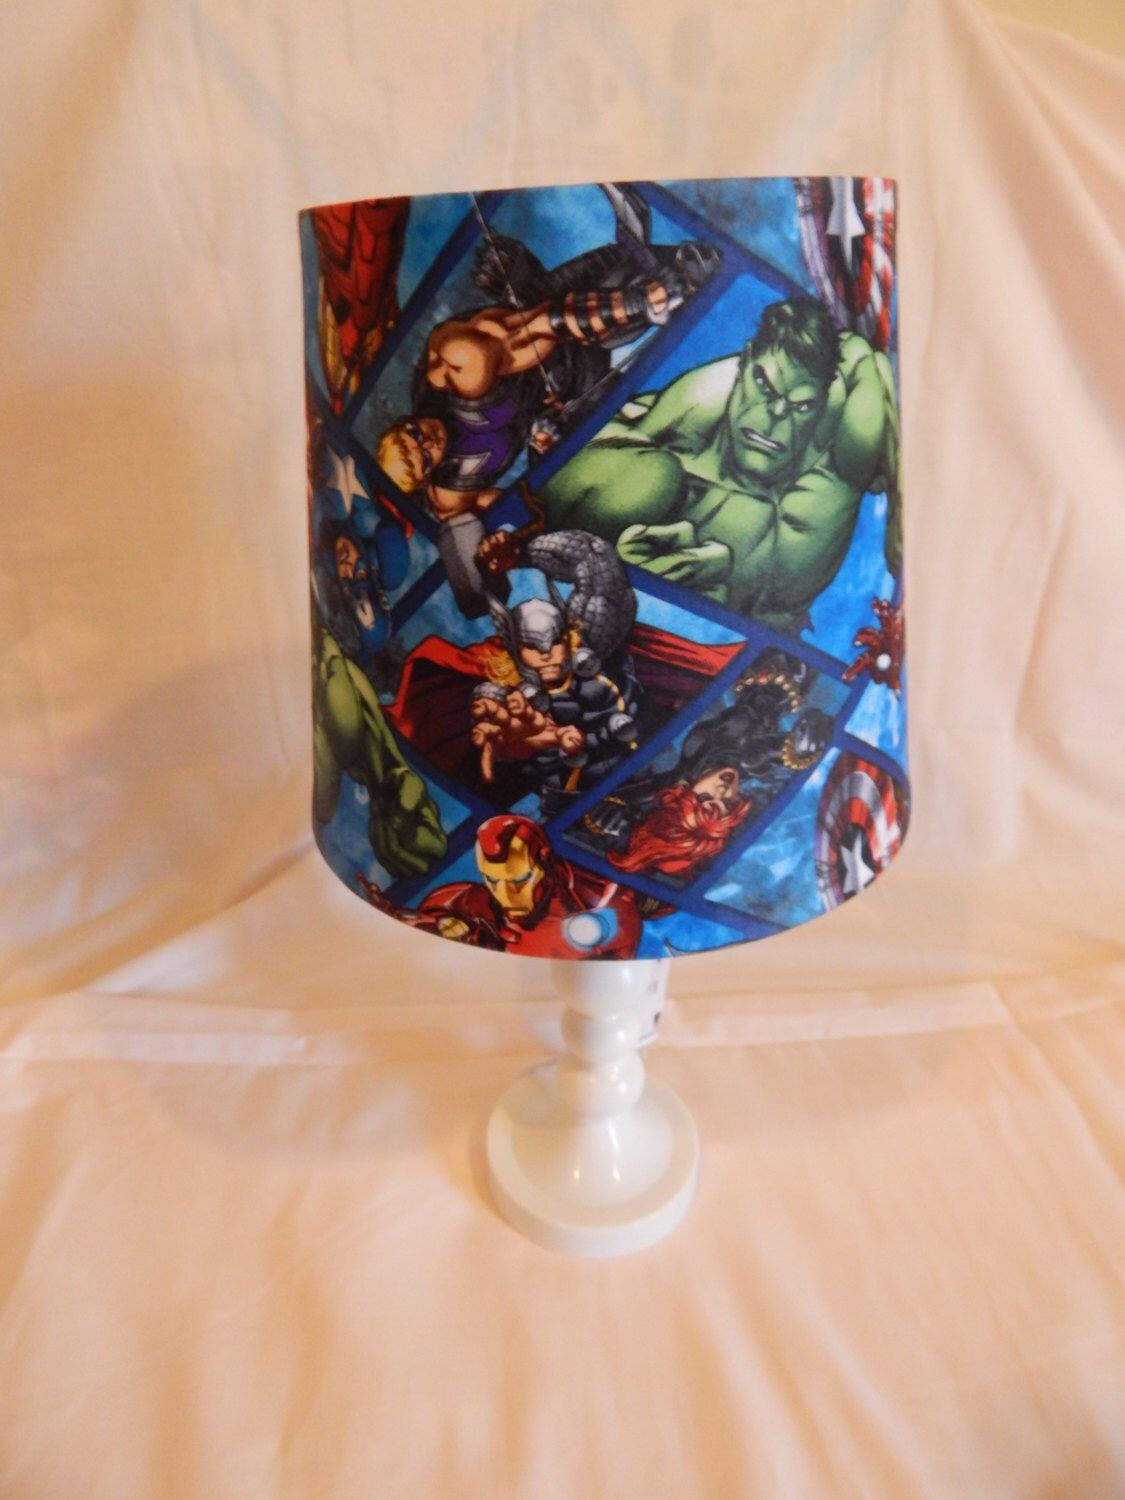 Avengers lamp shade children nursery baby nurseries baby nursery avengers lamp shade children nursery baby by craftymom1998 on etsy https aloadofball Gallery